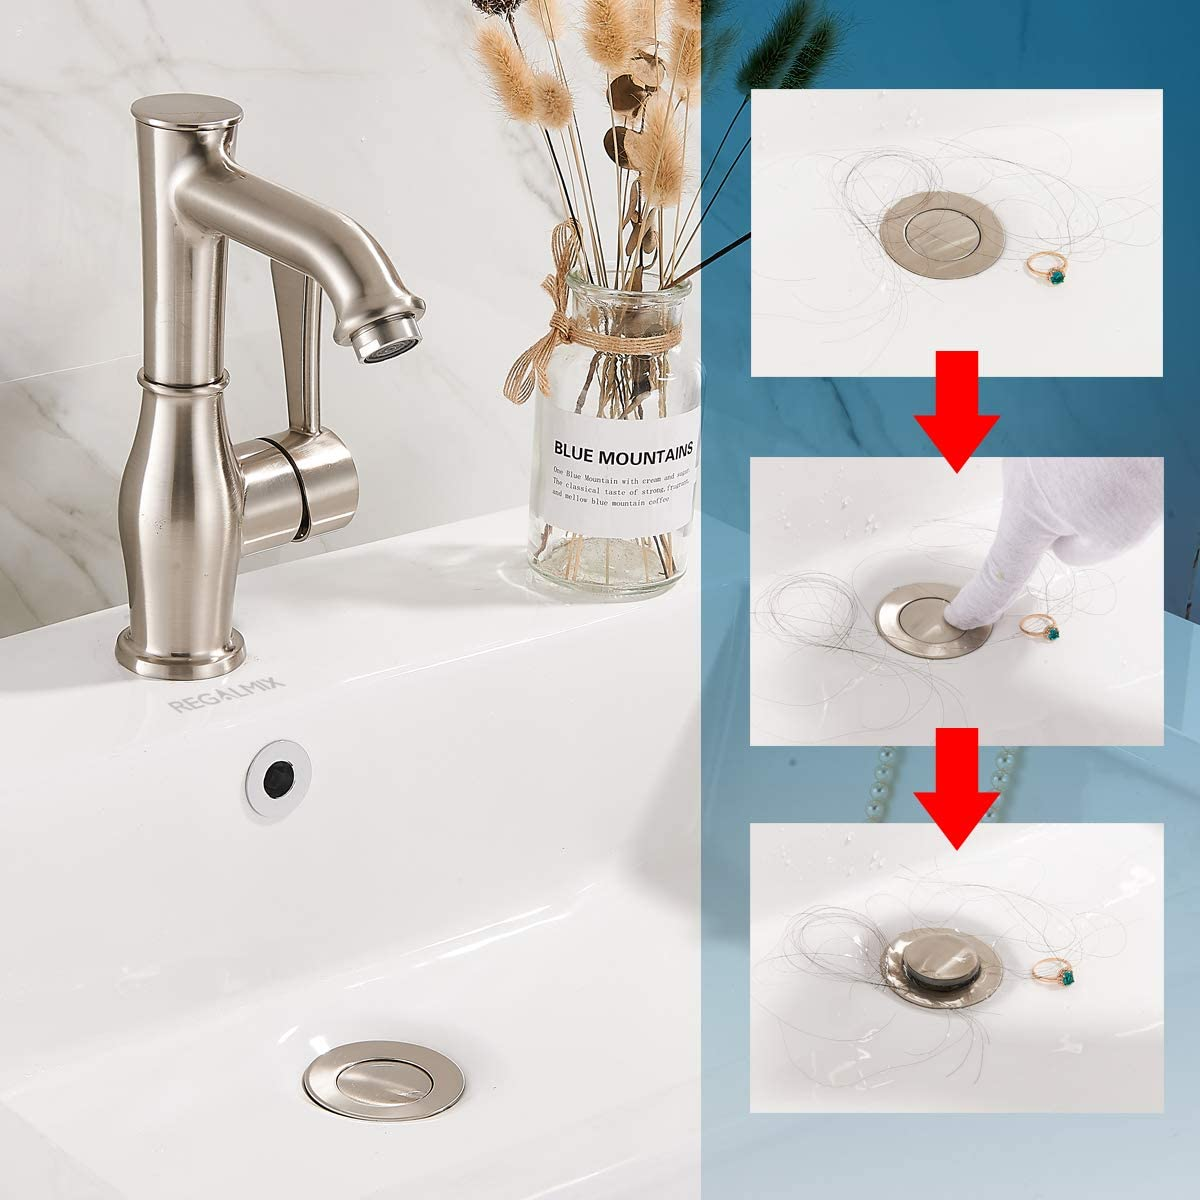 Buy Regalmix Vessel Sink Drain Bathroom Faucet Vessel Sink Pop Up Drain Stopper Built In Anti Clogging Strainer Brushed Nickel With Overflow Fits Standard American Drain Hole 1 1 2 To 1 3 4 R086j Bn Online In Indonesia B07nwwnqf3